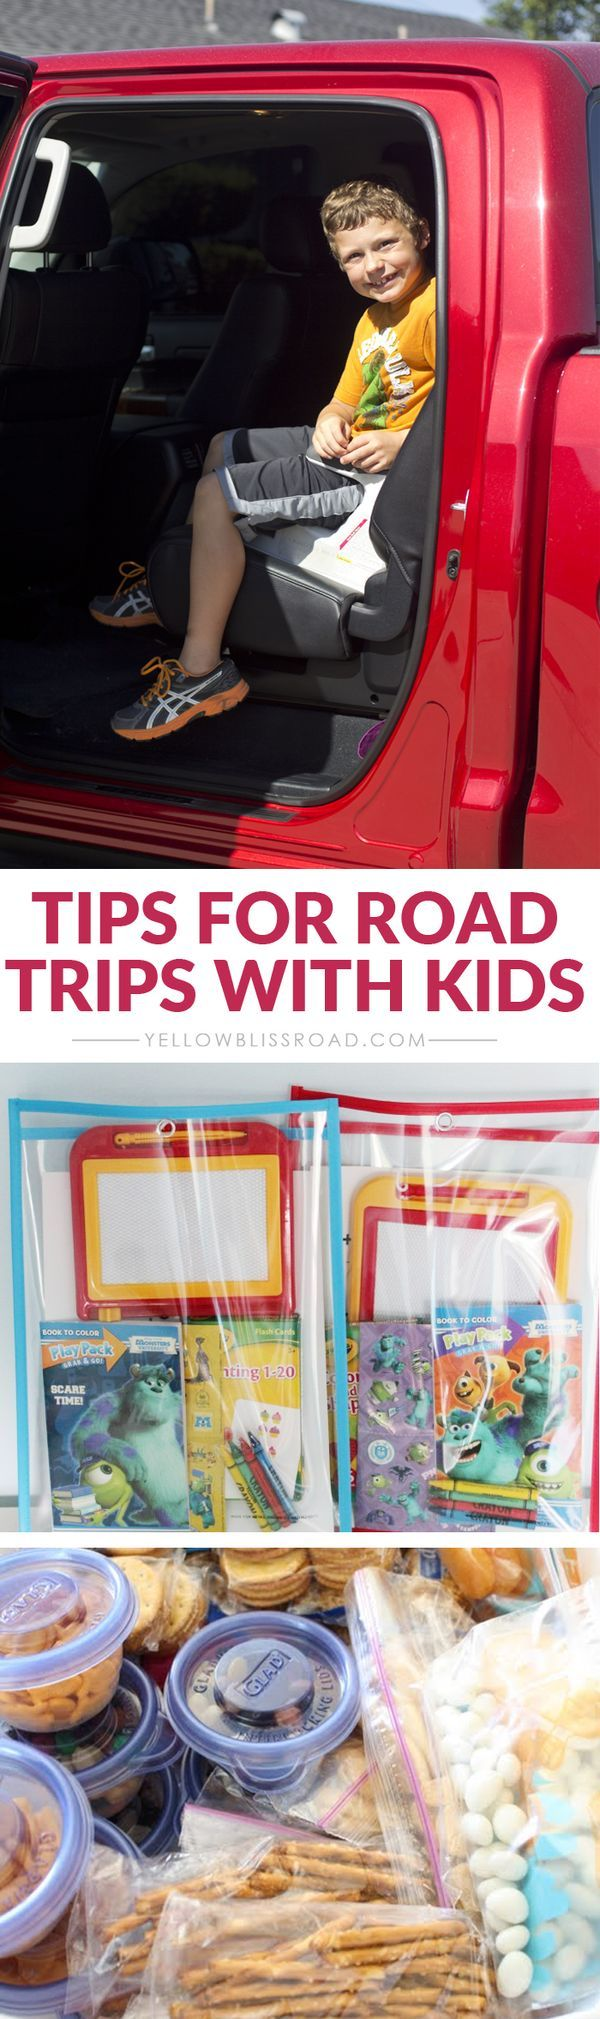 Taking a road trip with the kids has never been easier!